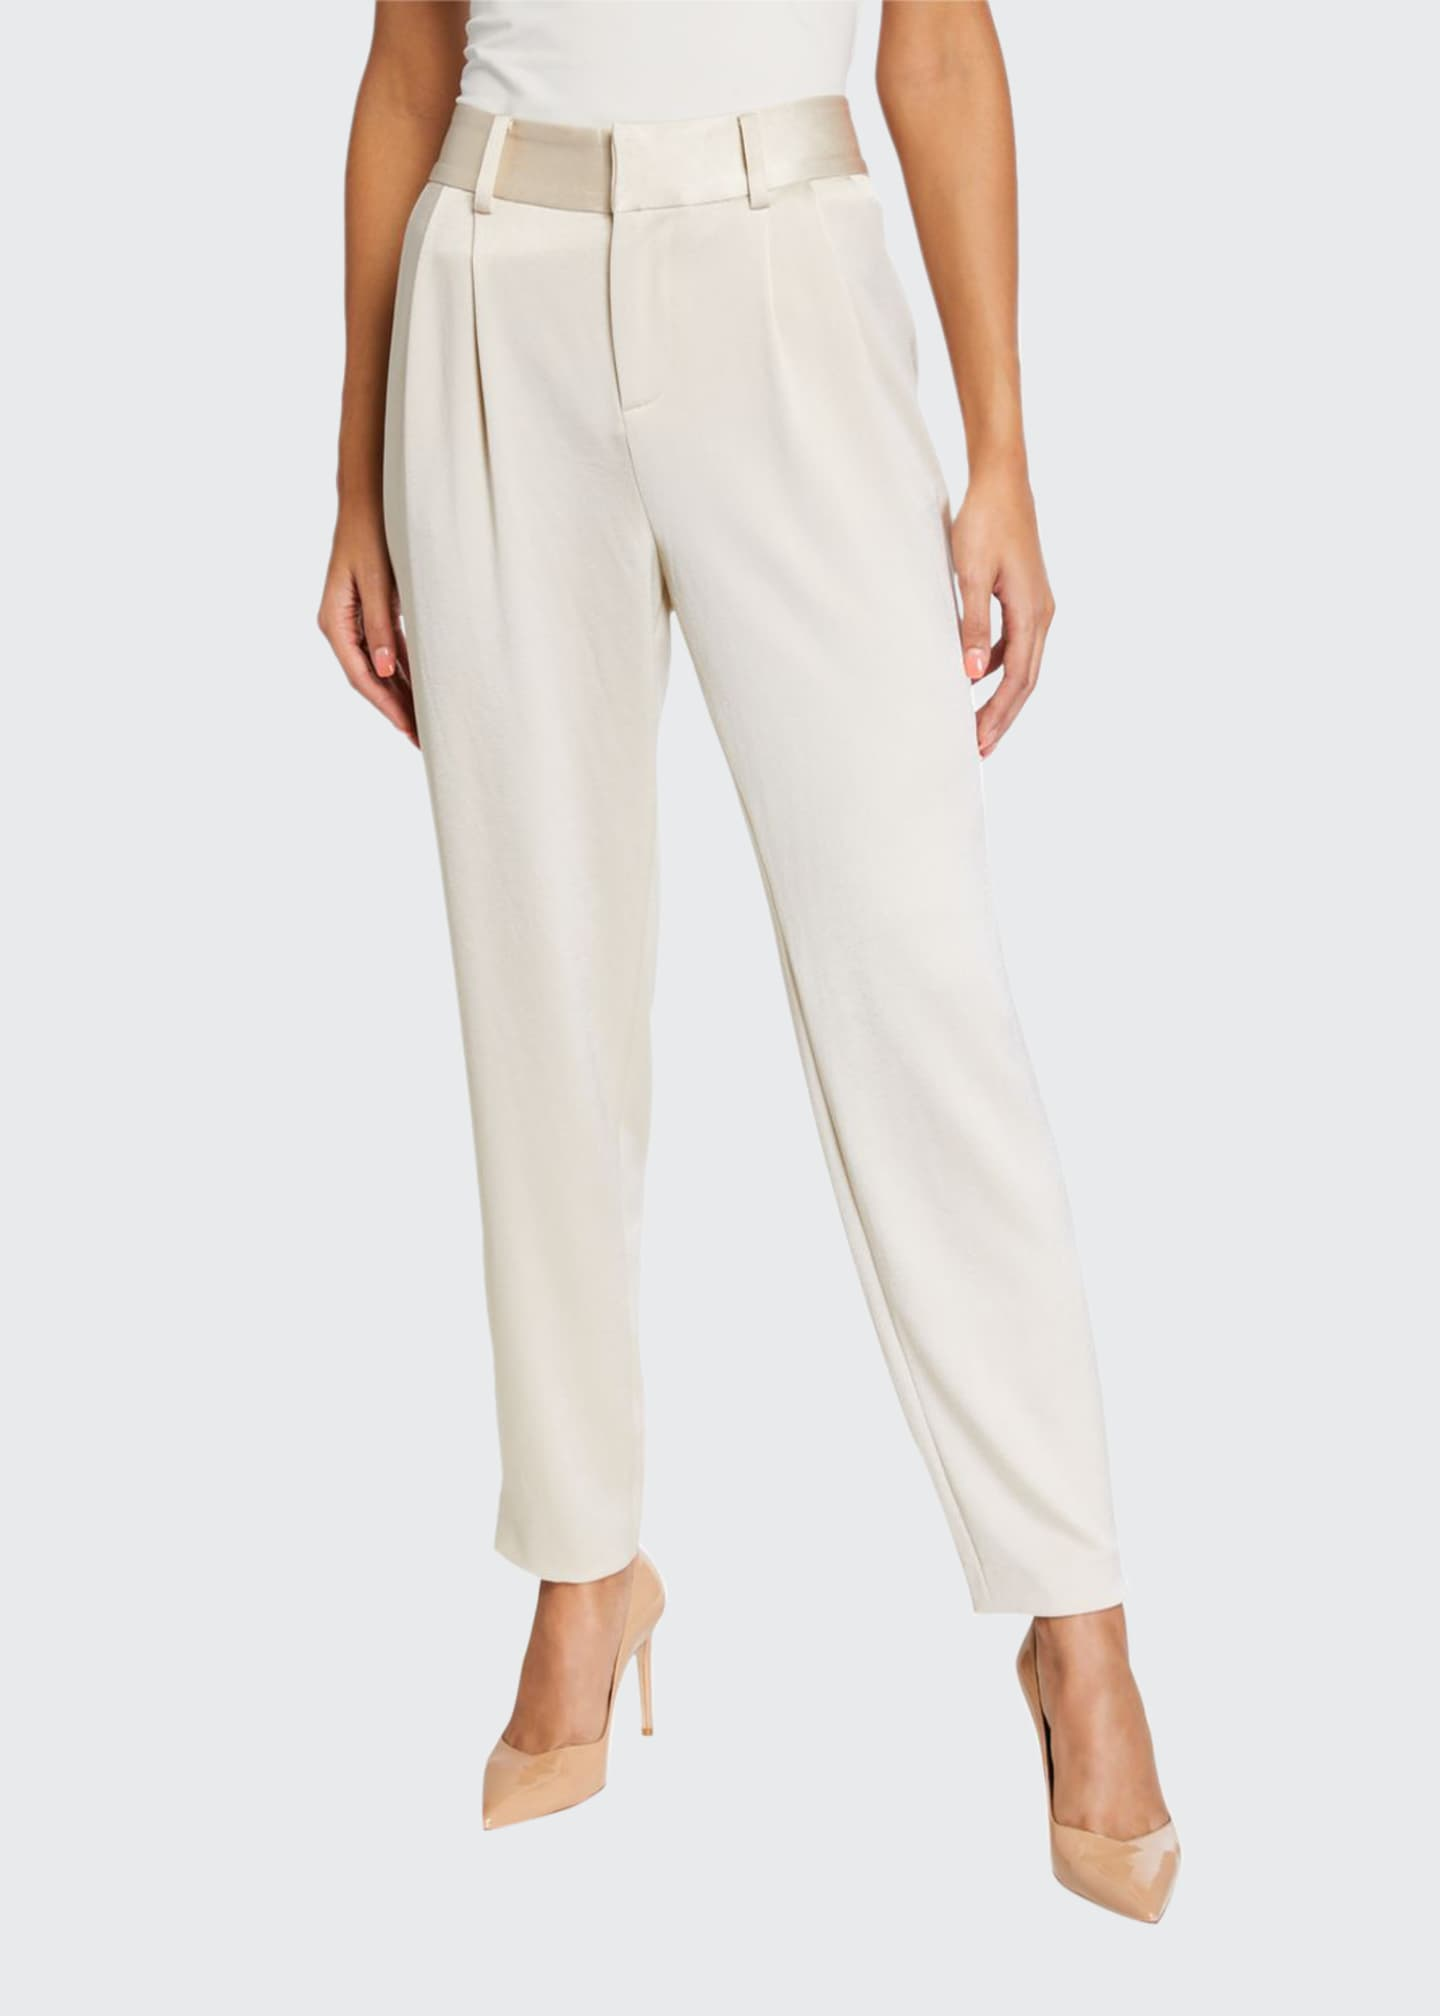 Alice + Olivia Troy Snap-Cuff Crepe Pants